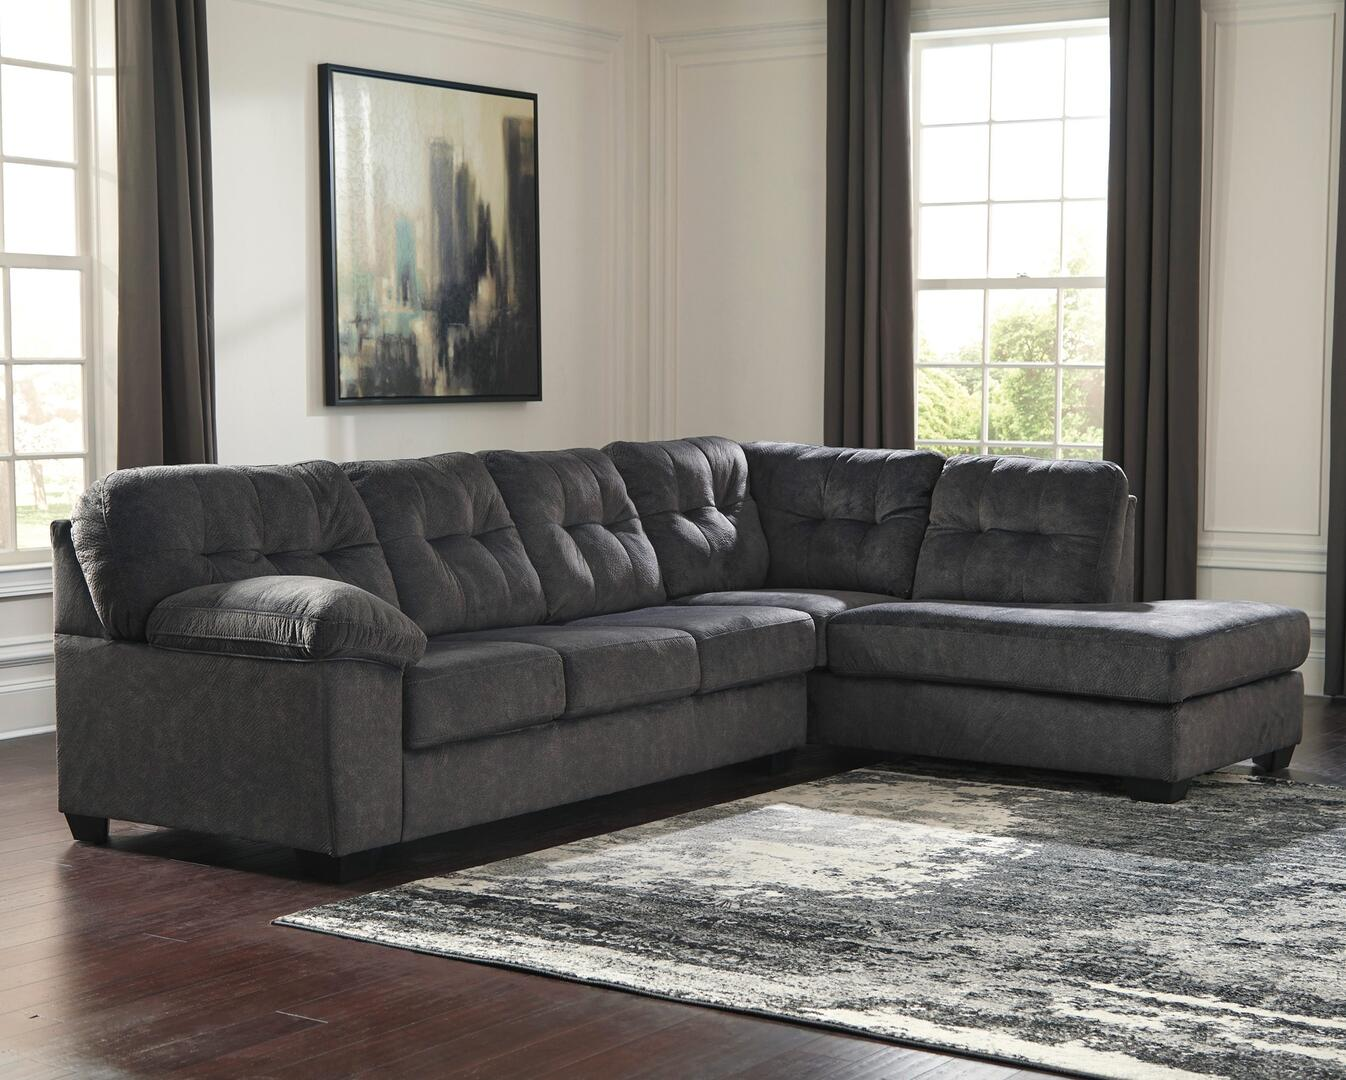 Signature Design By Ashley 705096617 Accrington Series Sofa And Chaise Fabric Sofa Appliances